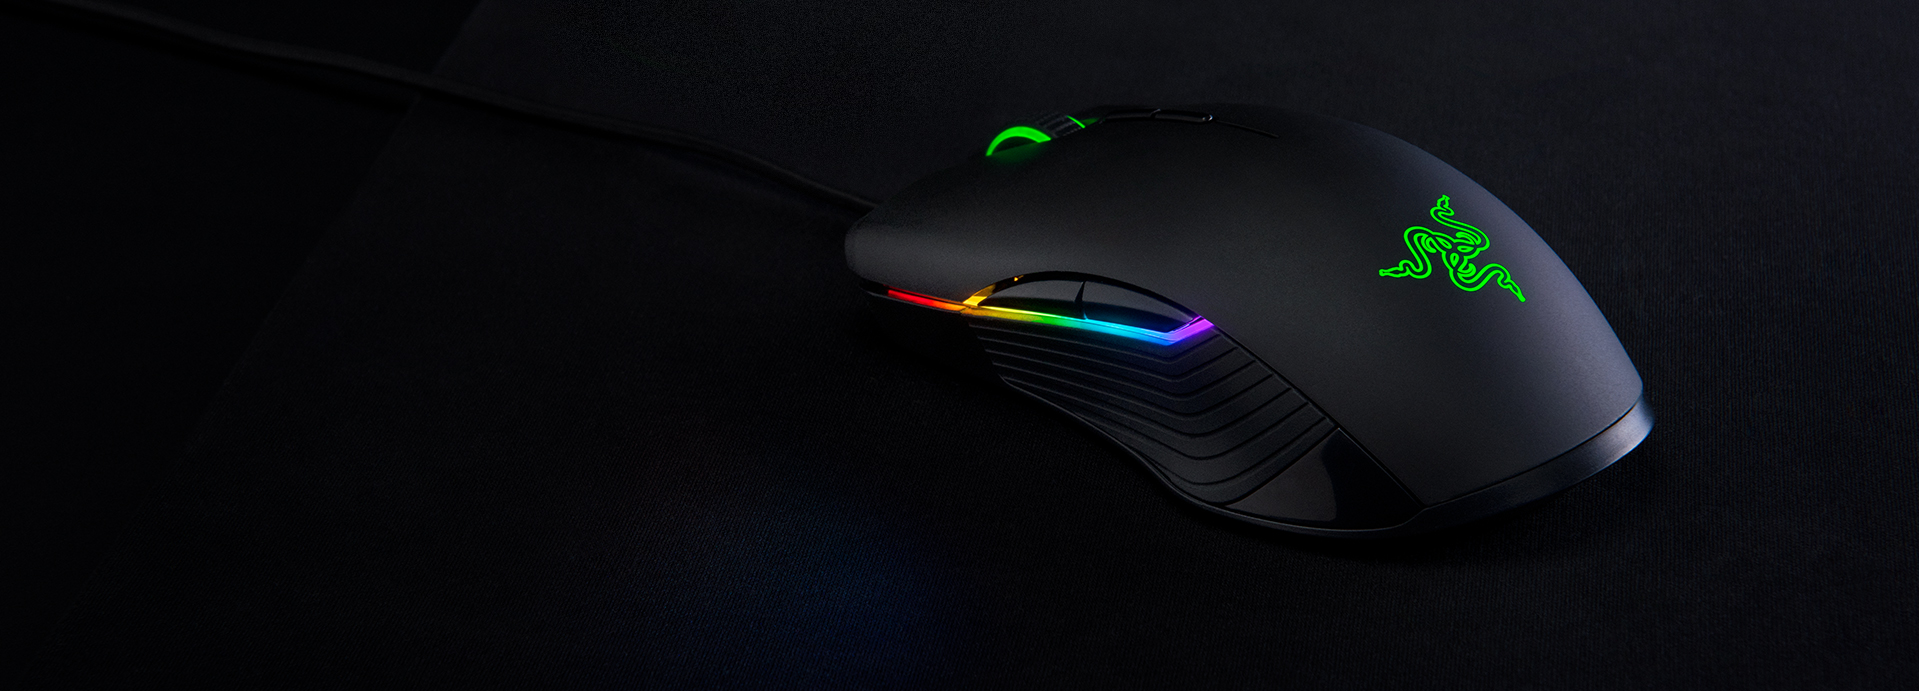 Powered By Razer Synapse 3 Beta With Hybrid On Board And Cloud Memory